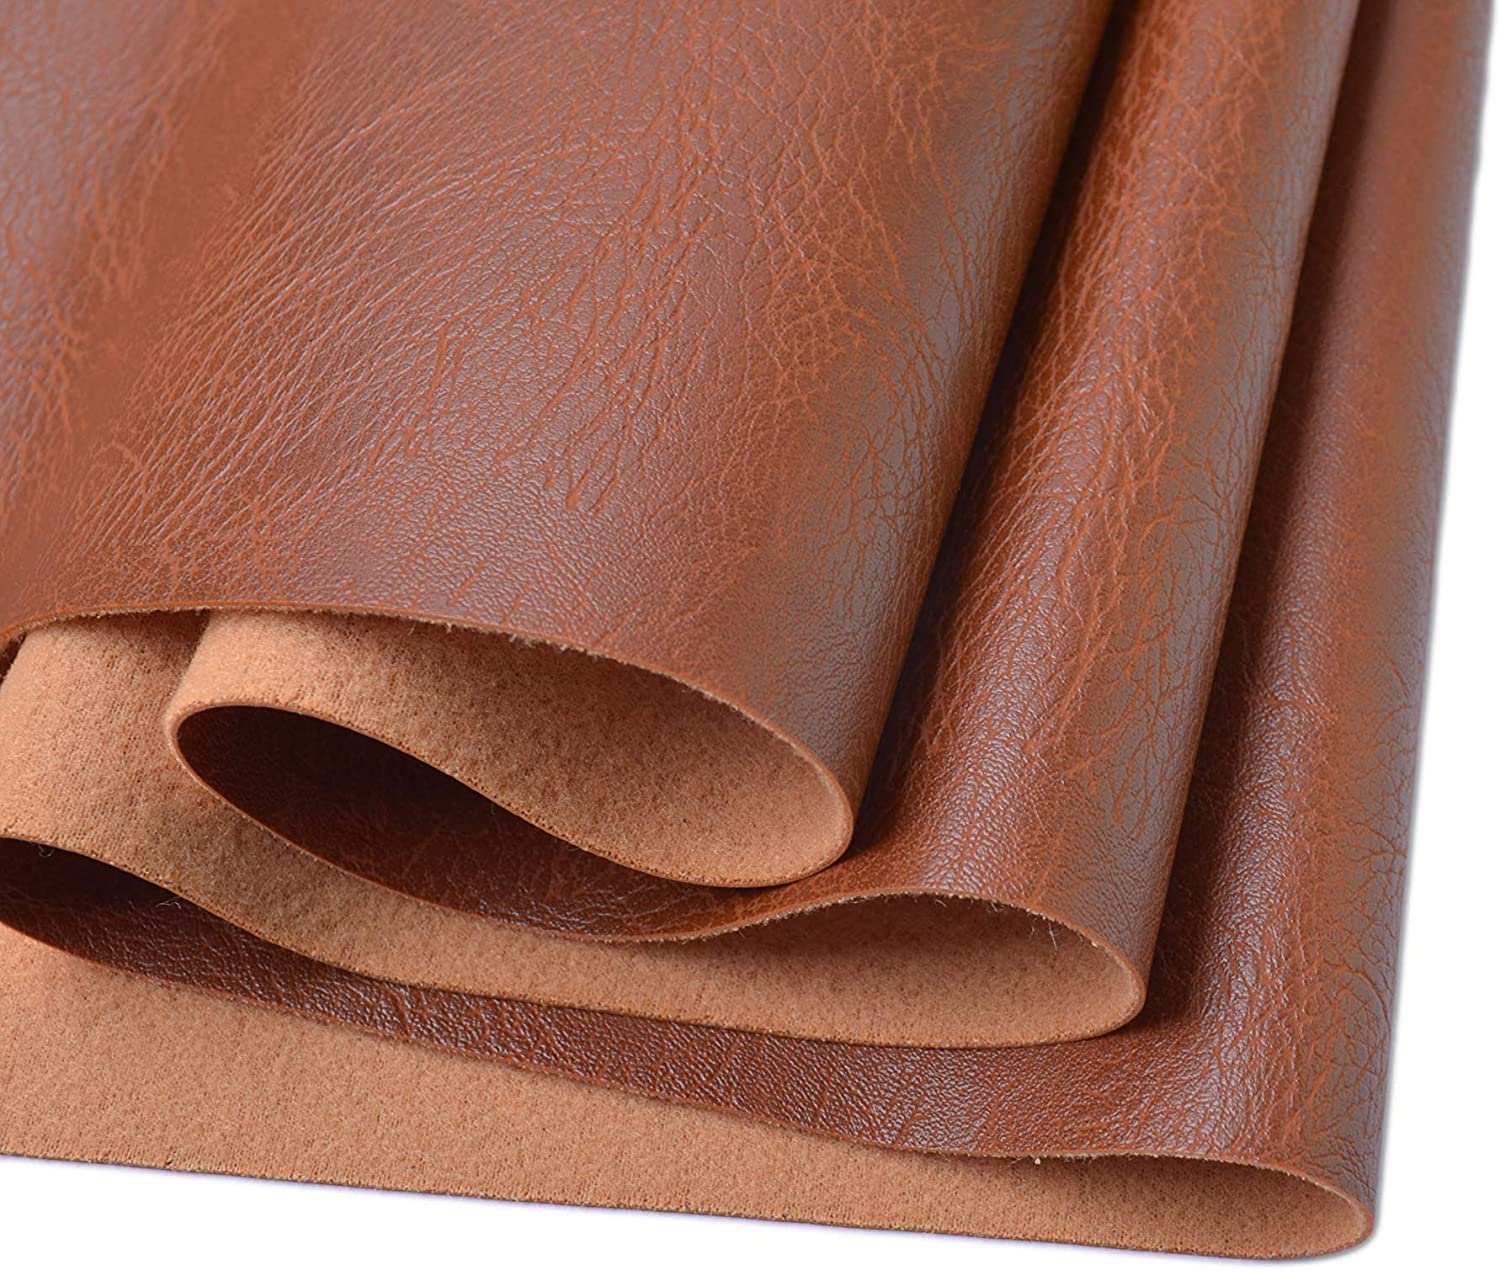 Wento Thick 1 Yard Faux Leather Fabric Soft Skin Grain PU Leather Fabric for Furniture Cover Reupholster Sofa Chairs Cushiones Vinyl Upholstery Fabric (1yard,Cinnamon Brown)